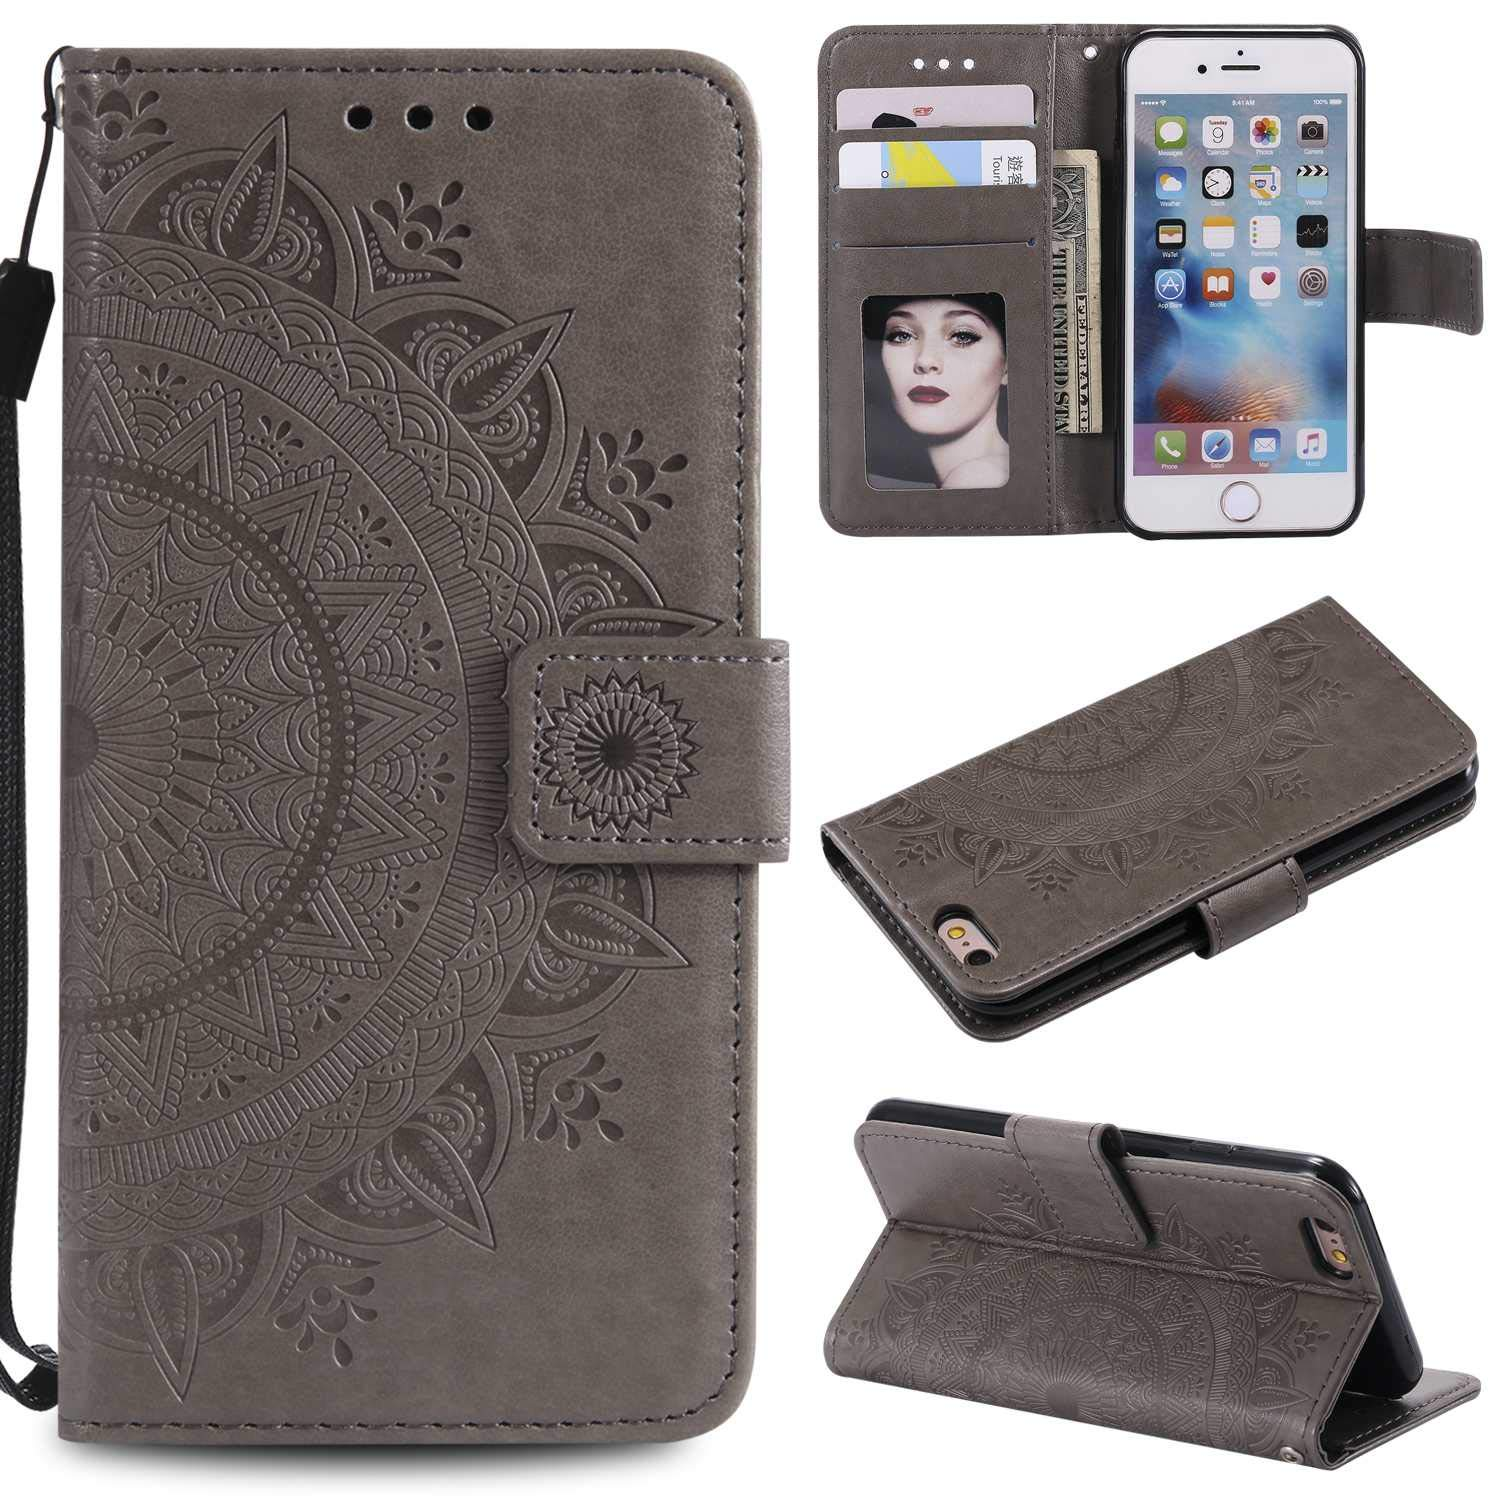 Case Huawei Mate 10 Lite Bear Embossed Sales results No. 1 PU Department store Leather Village Desig